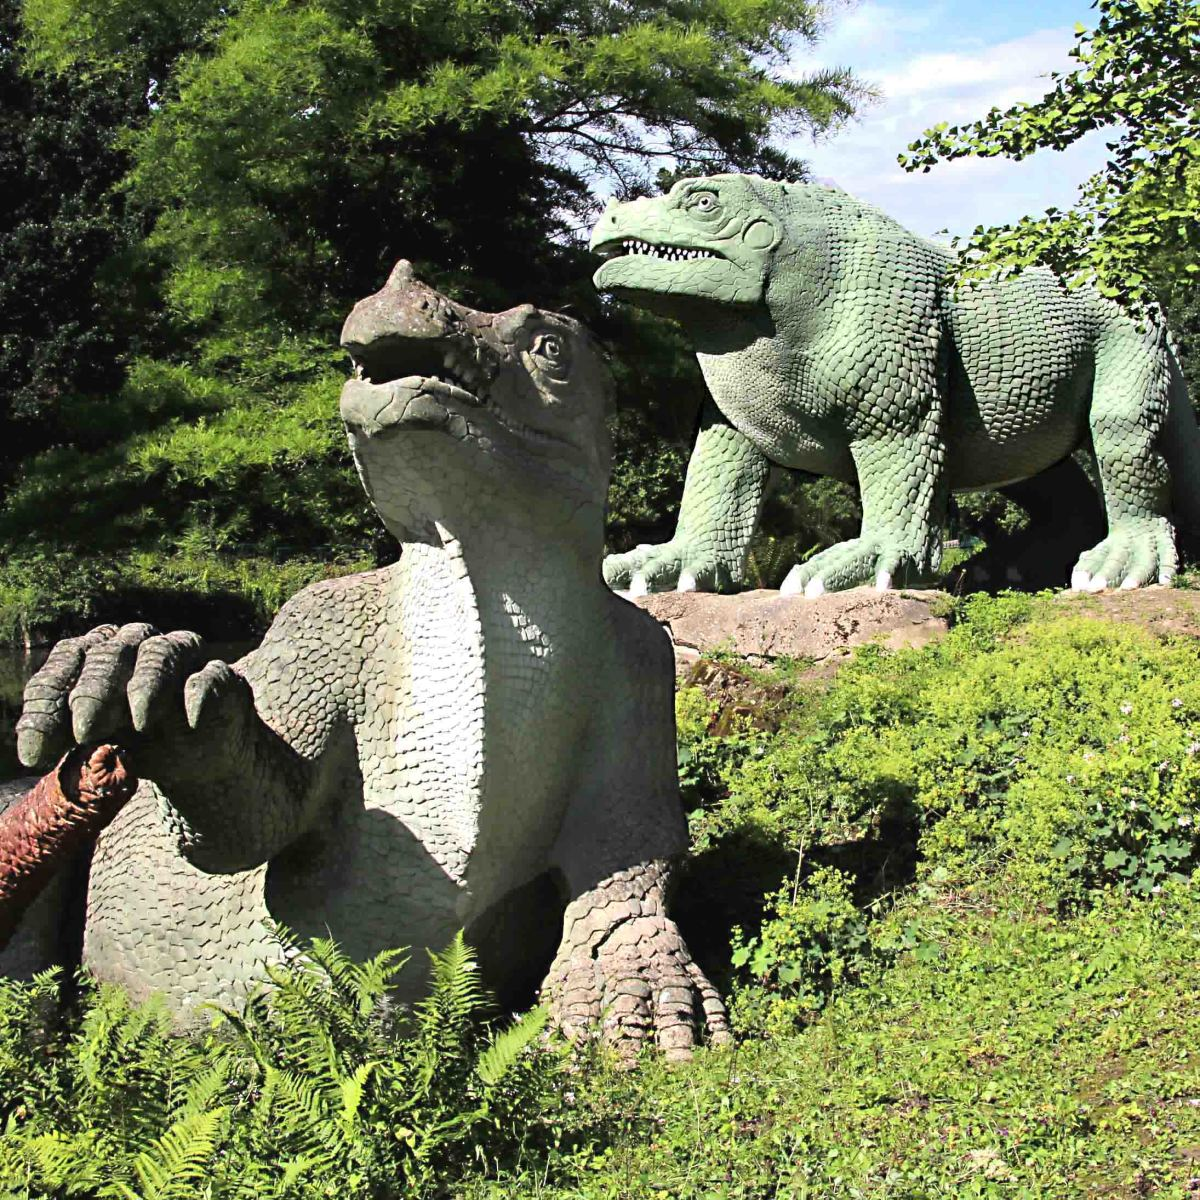 The Crystal Palace Dinosaurs